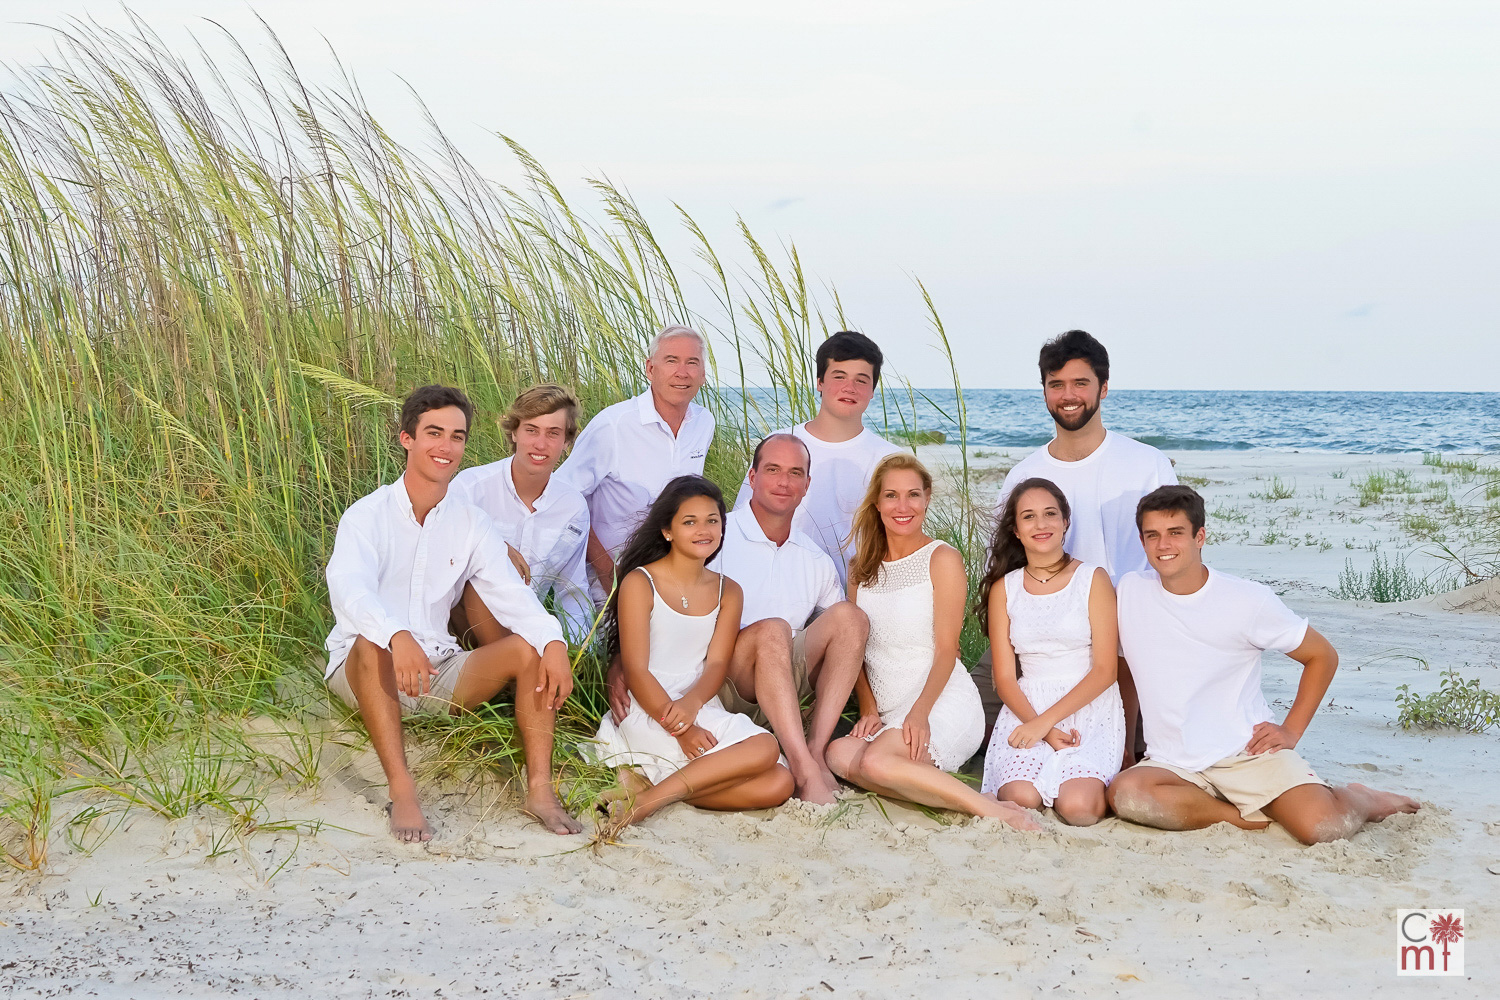 beach_portraits_beaufort-134.jpg